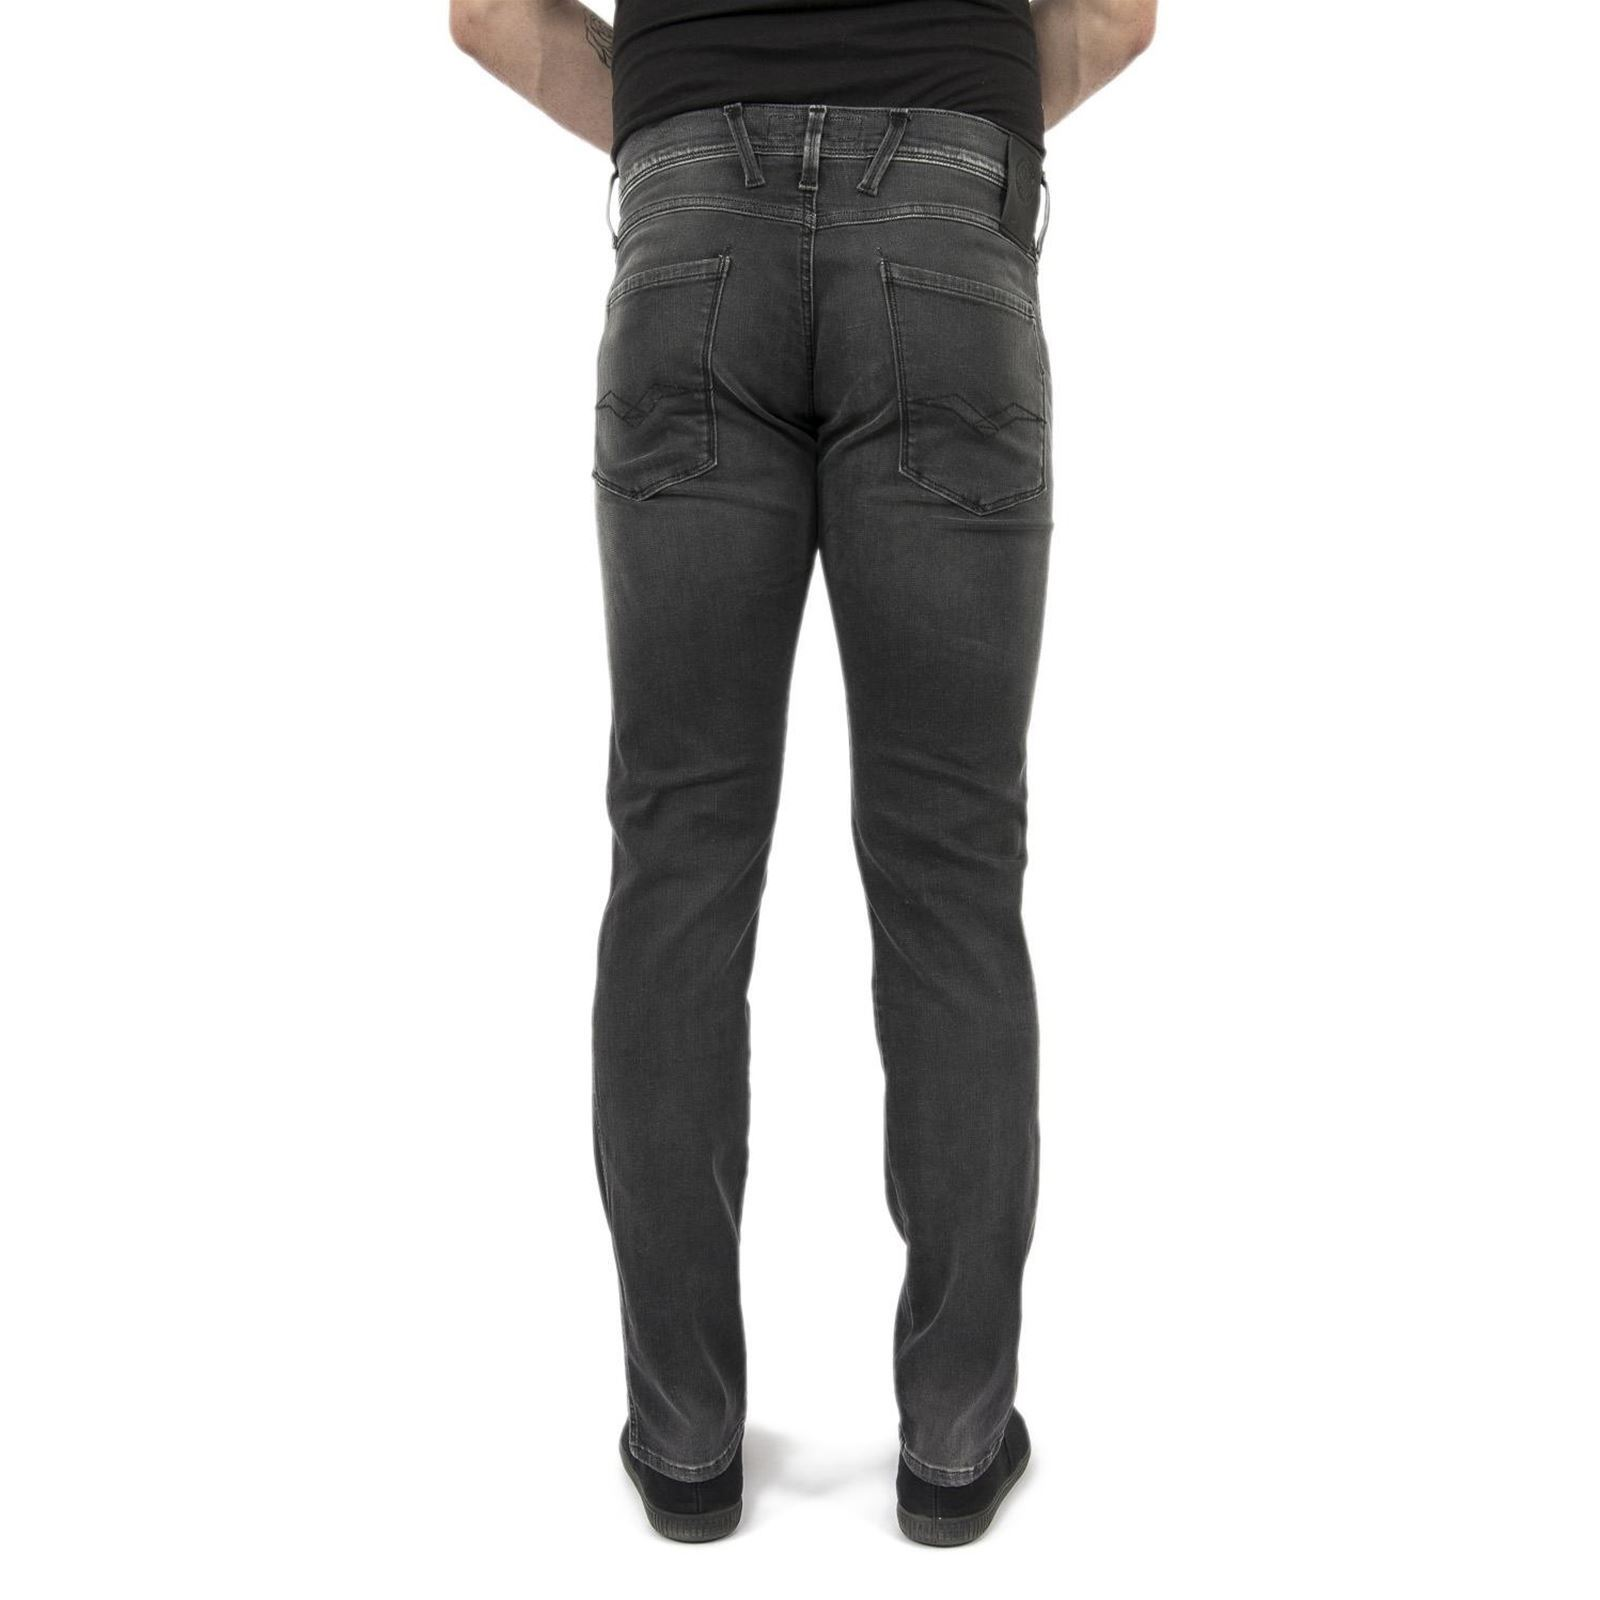 Replay Homme RegularGris Jean Jean Replay Jean Replay V Homme RegularGris V RegularGris hdQBtoxsrC